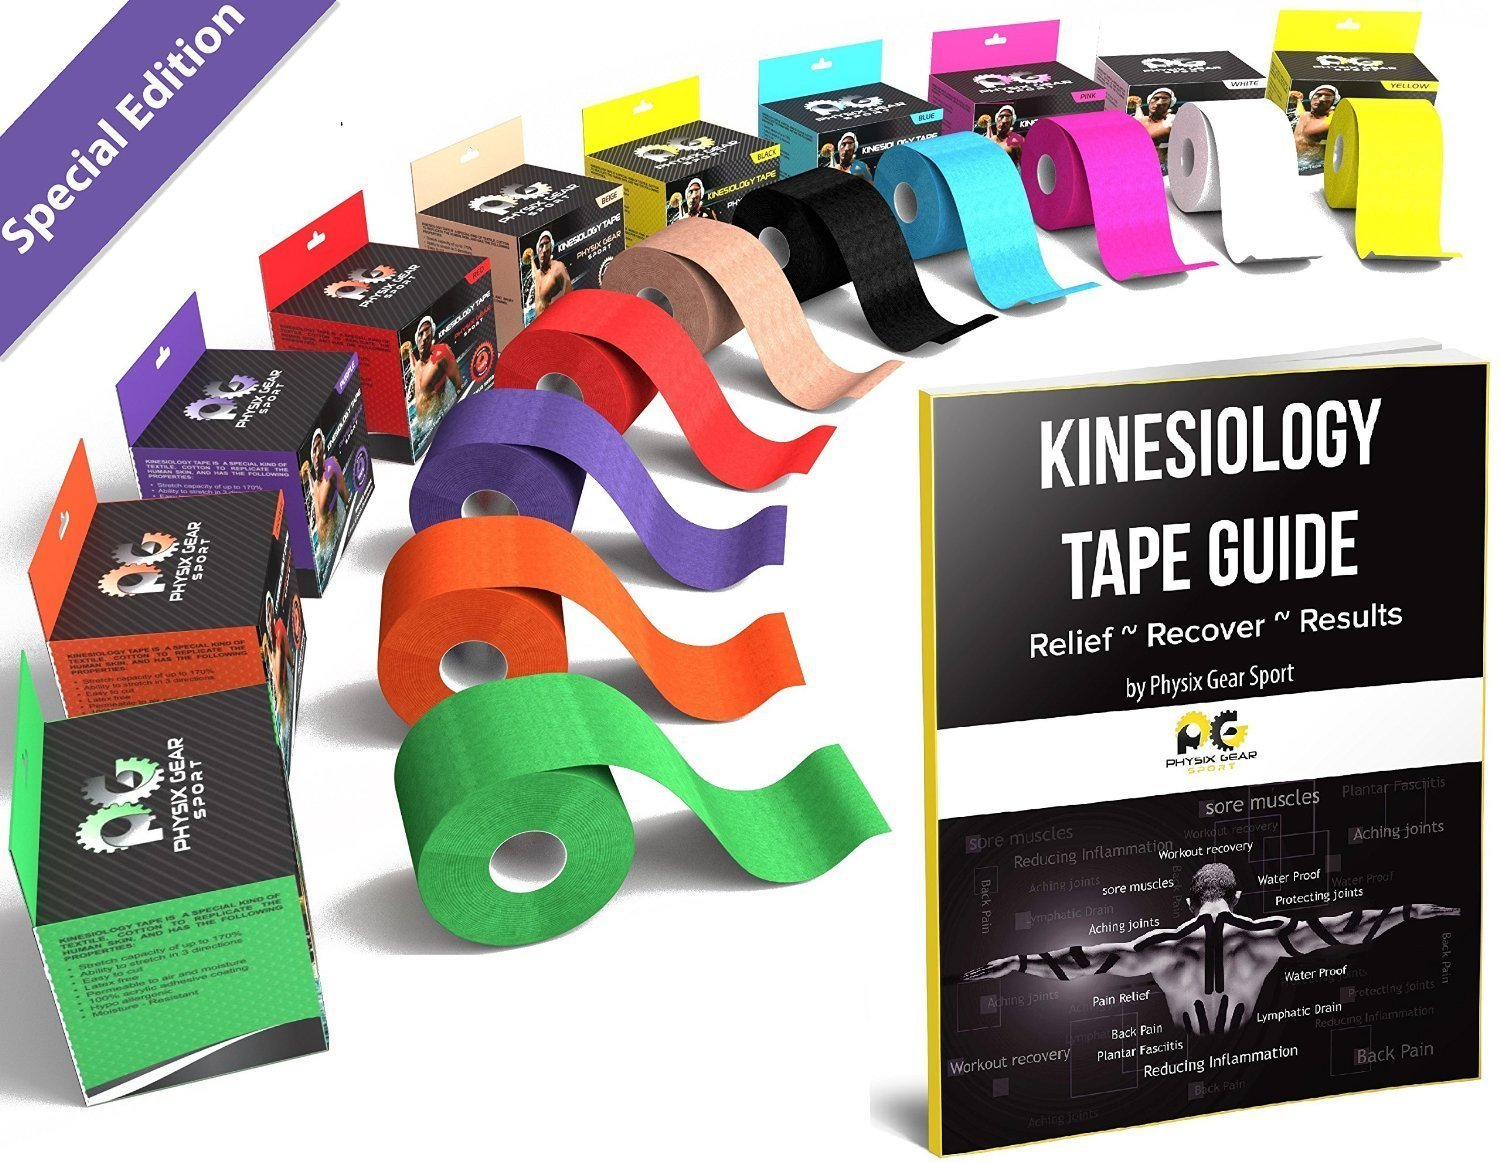 Physix Gear Sport Kinesiology Tape - Free Illustrated E-Guide - 16ft Uncut Roll - Best Pain Relief Adhesive for Muscles, Shin Splints Knee & Shoulder - 24/7 Waterproof Therapeutic Aid (1PK PURP)